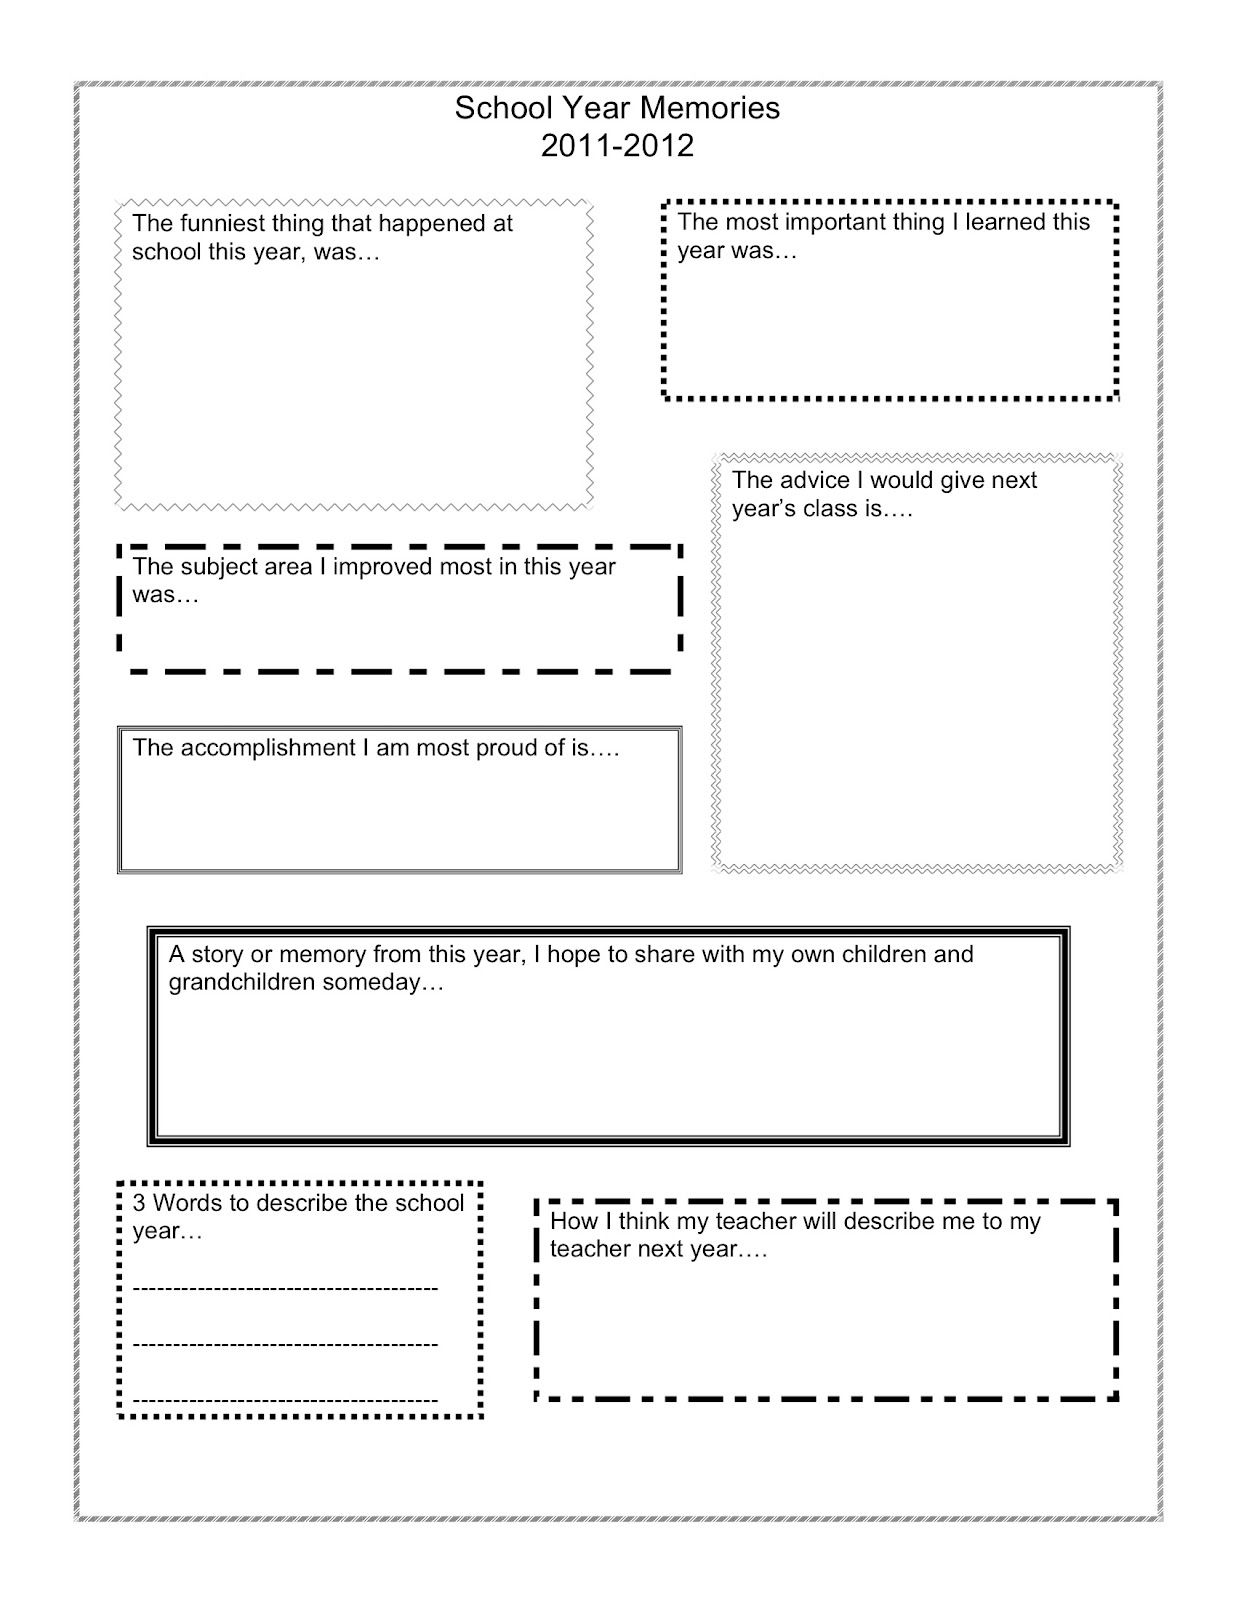 End of the School Year Reflection - Thinking Zing | School reflection,  School year memories, School memory book printables